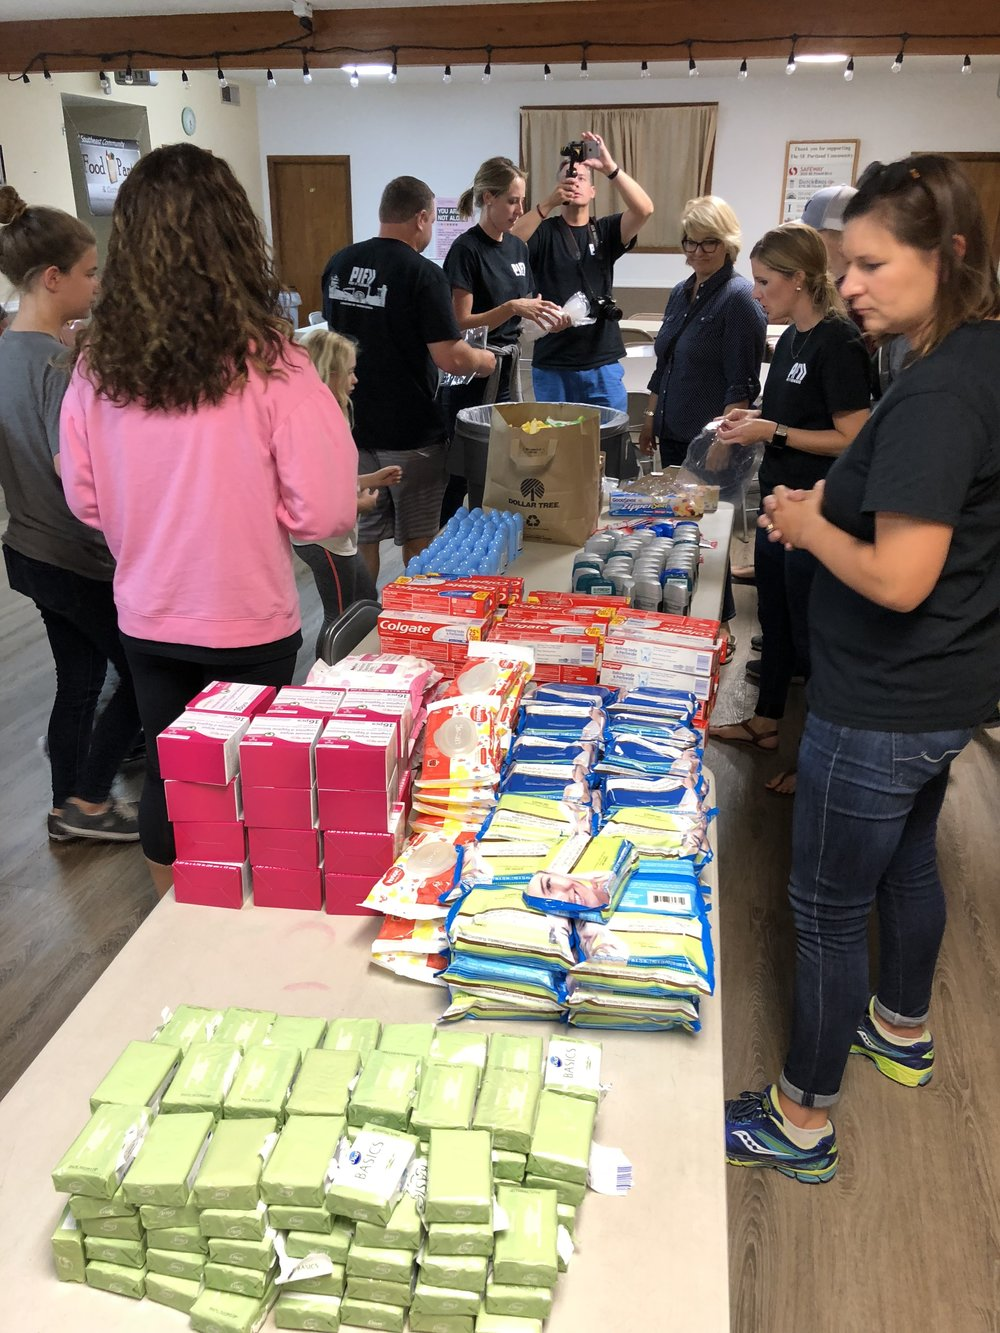 Putting together hygiene kits for our homeless neighbors.